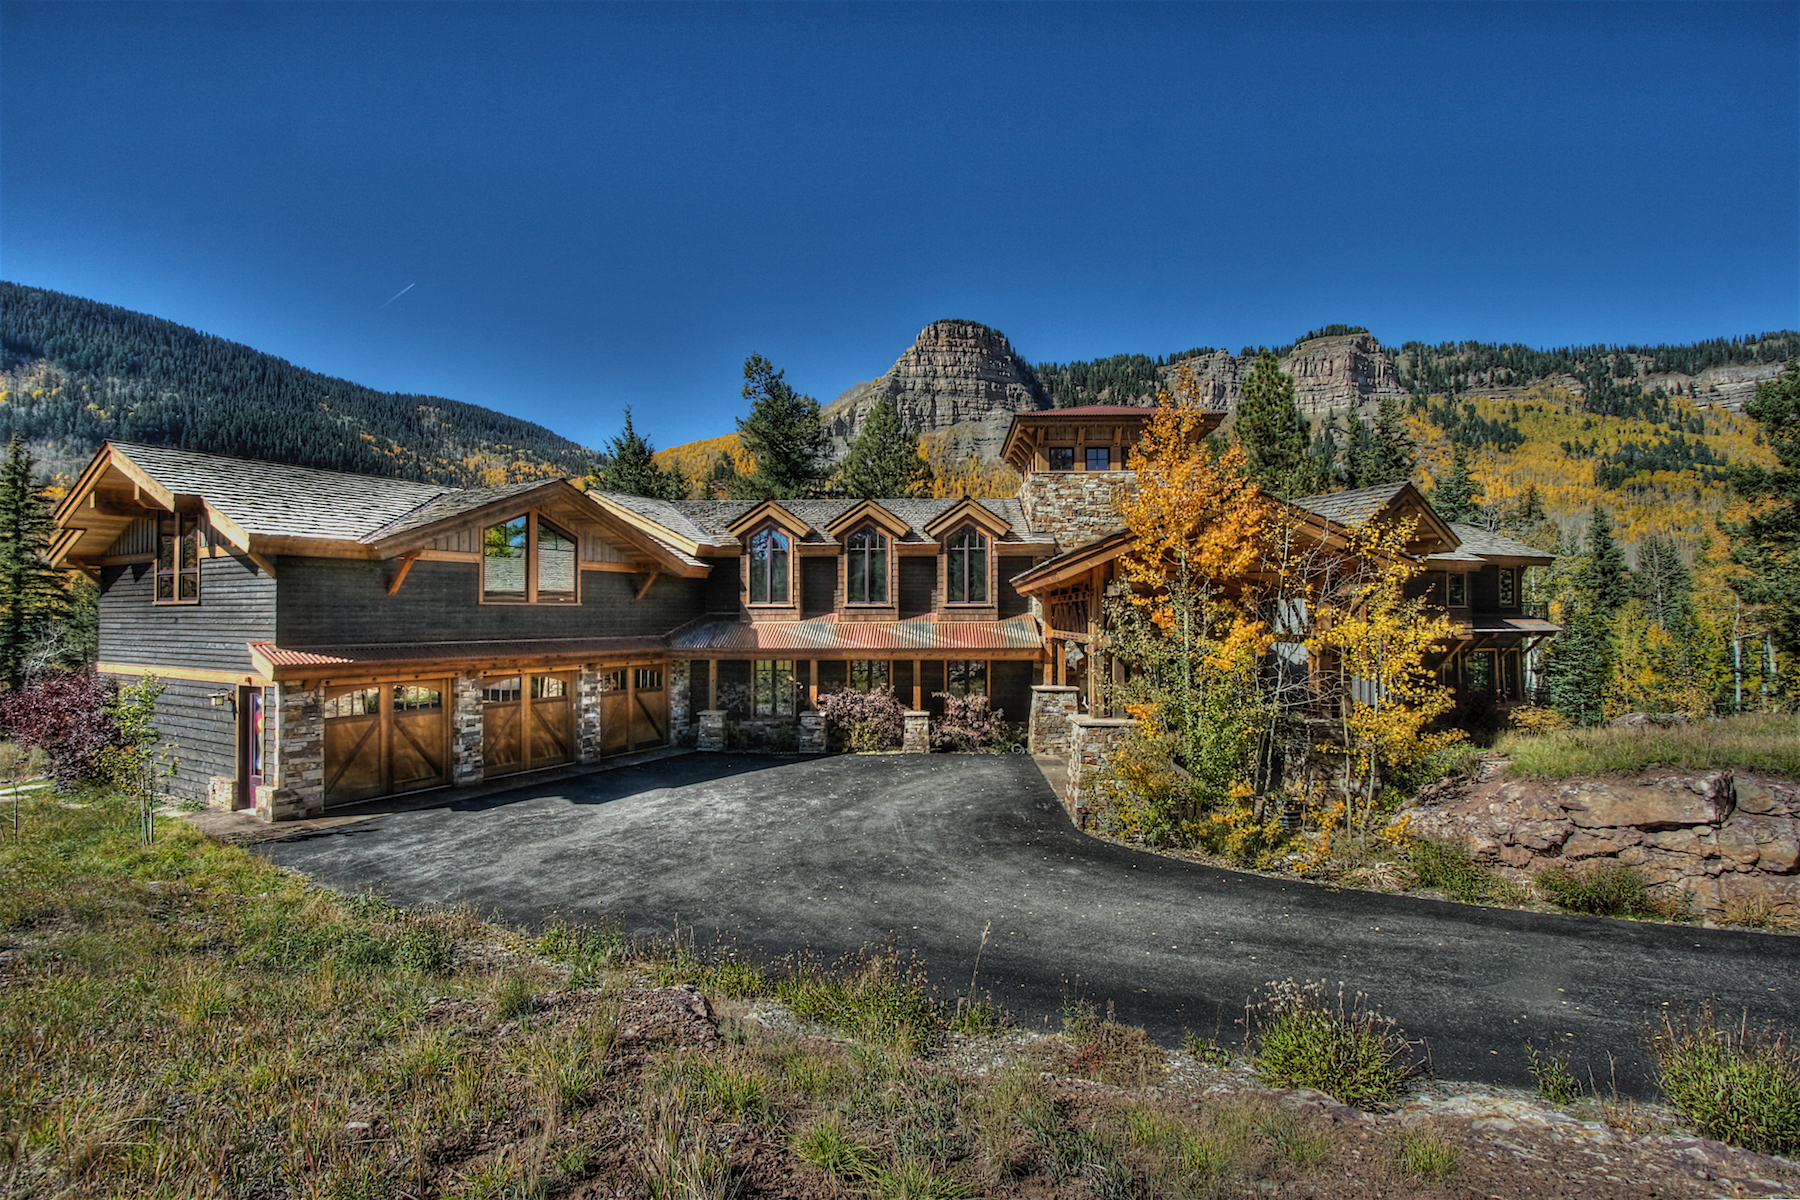 Casa Unifamiliar por un Venta en CastleRock at Two Dogs 455 Pinnacle View Drive Durango, Colorado 81301 Estados Unidos